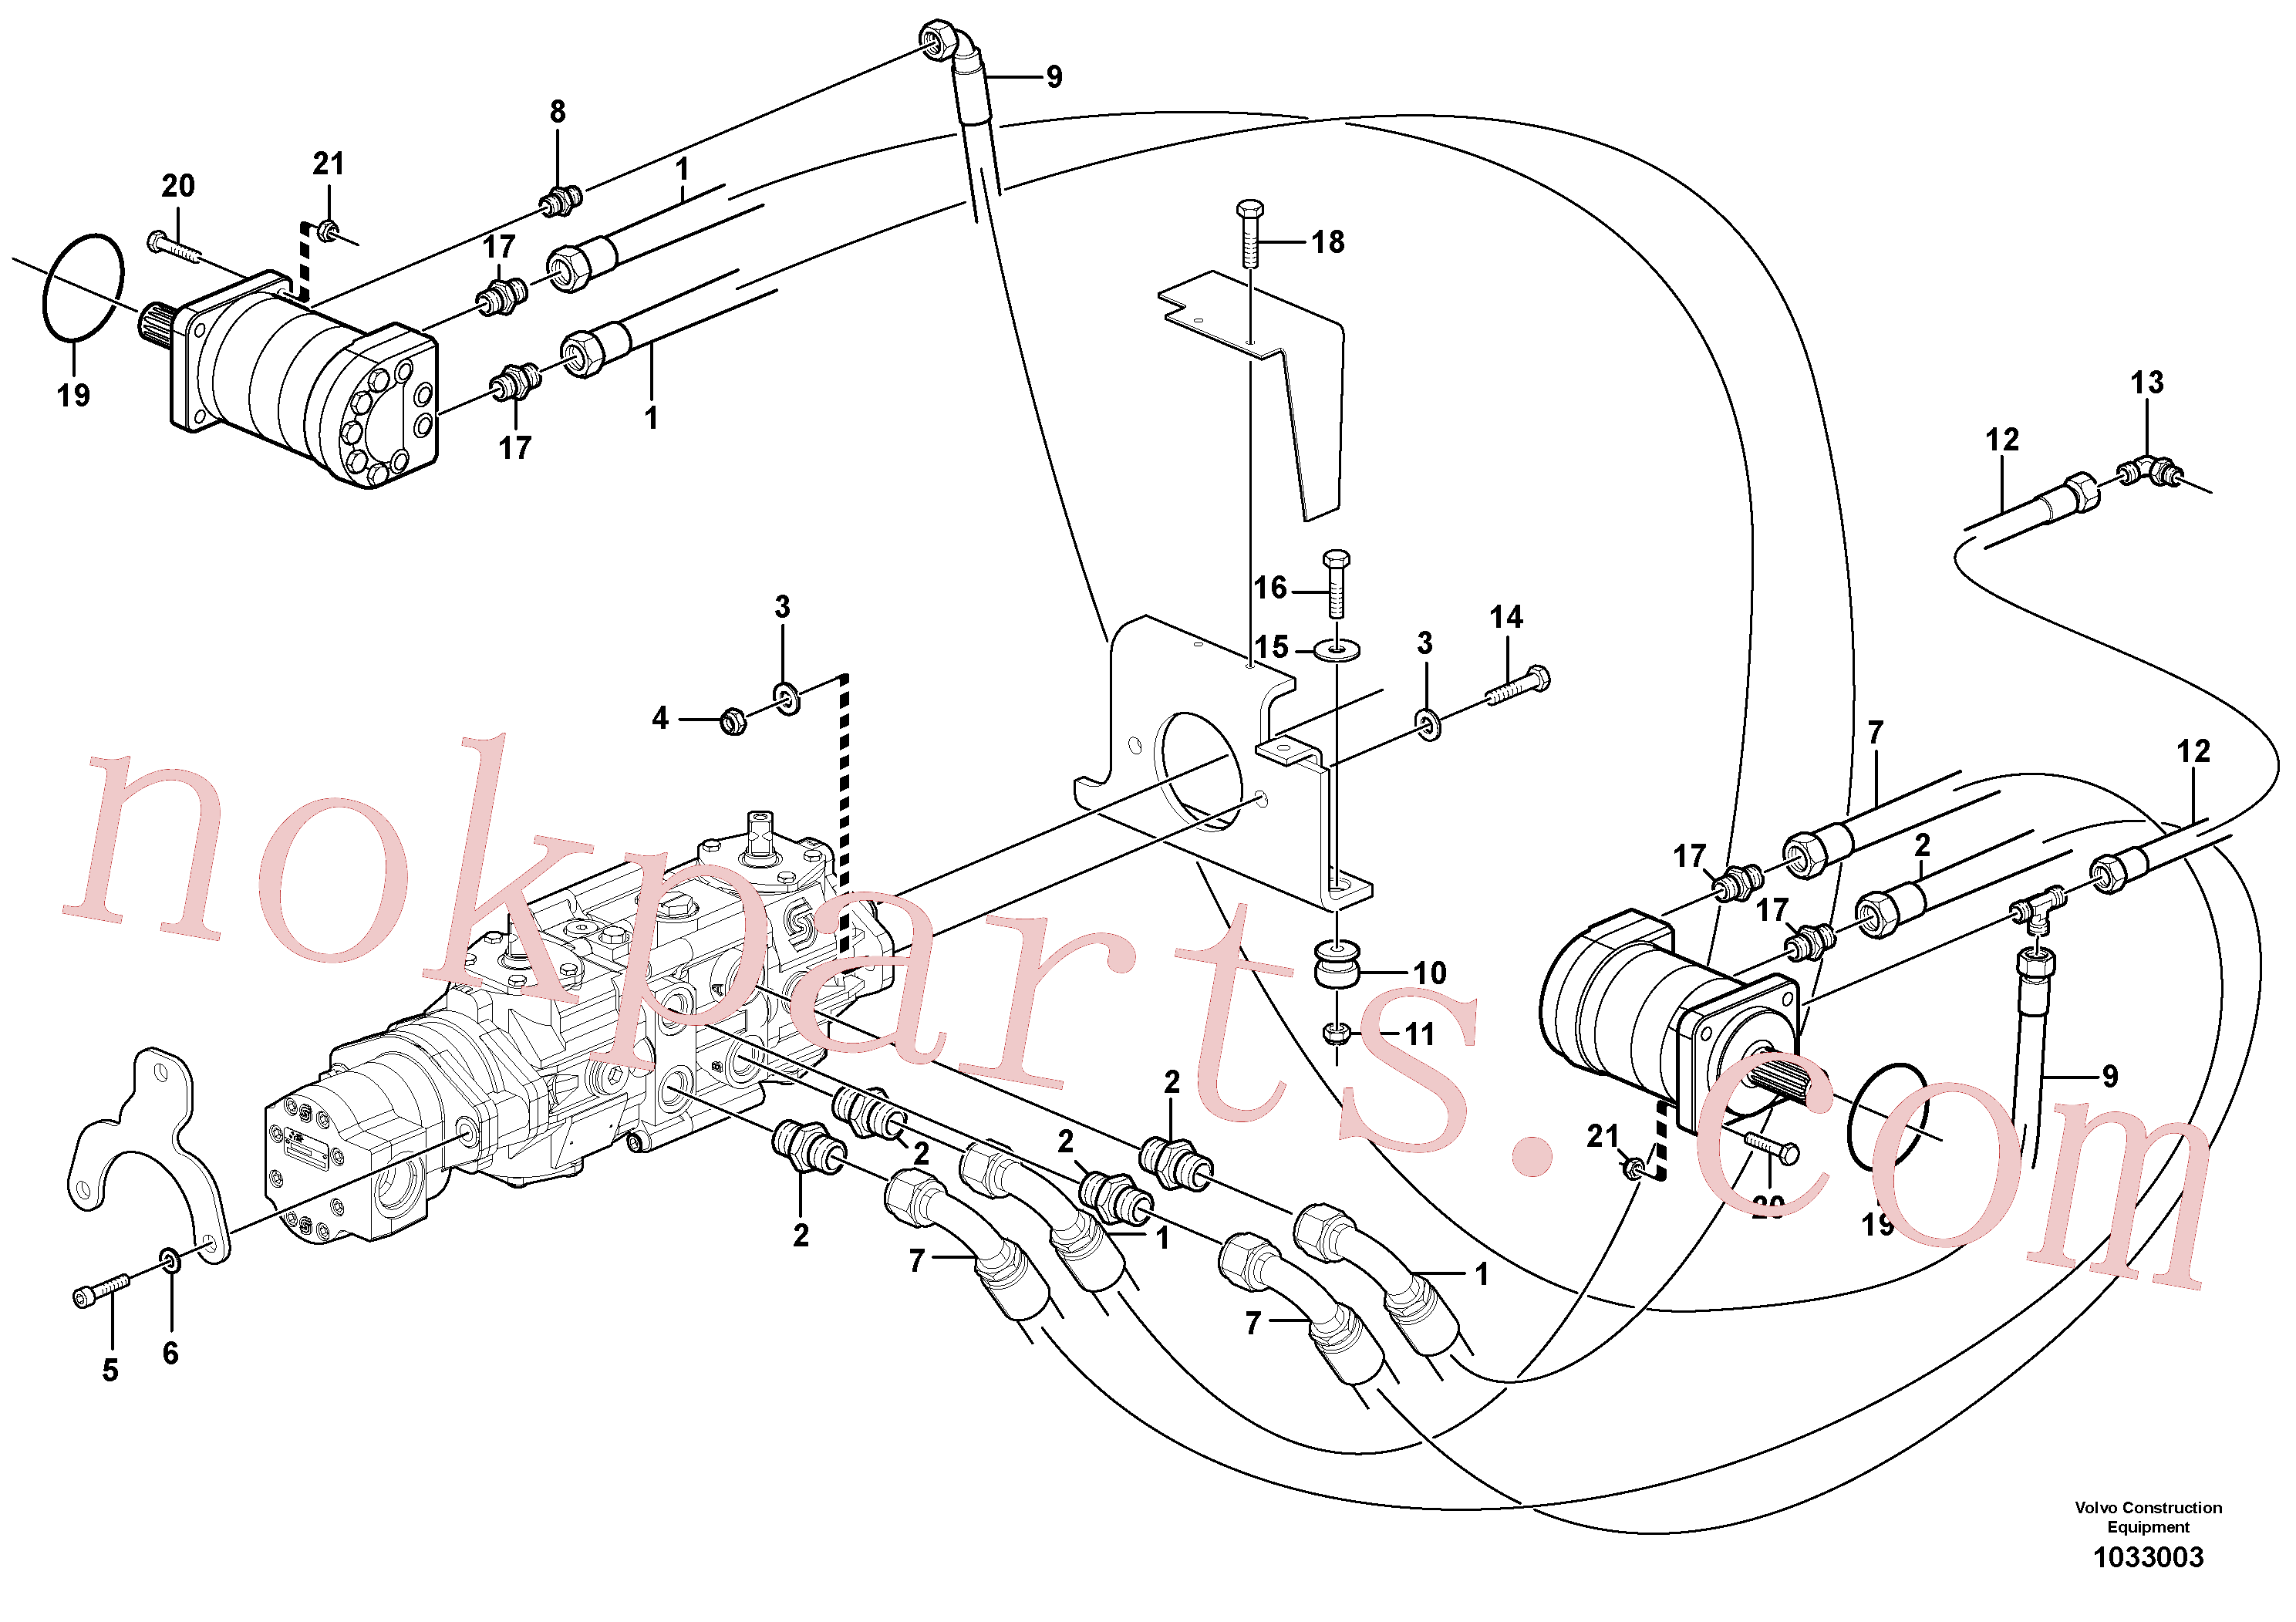 VOE11841526 for Volvo Hydraulic system Transport(1033003 assembly)